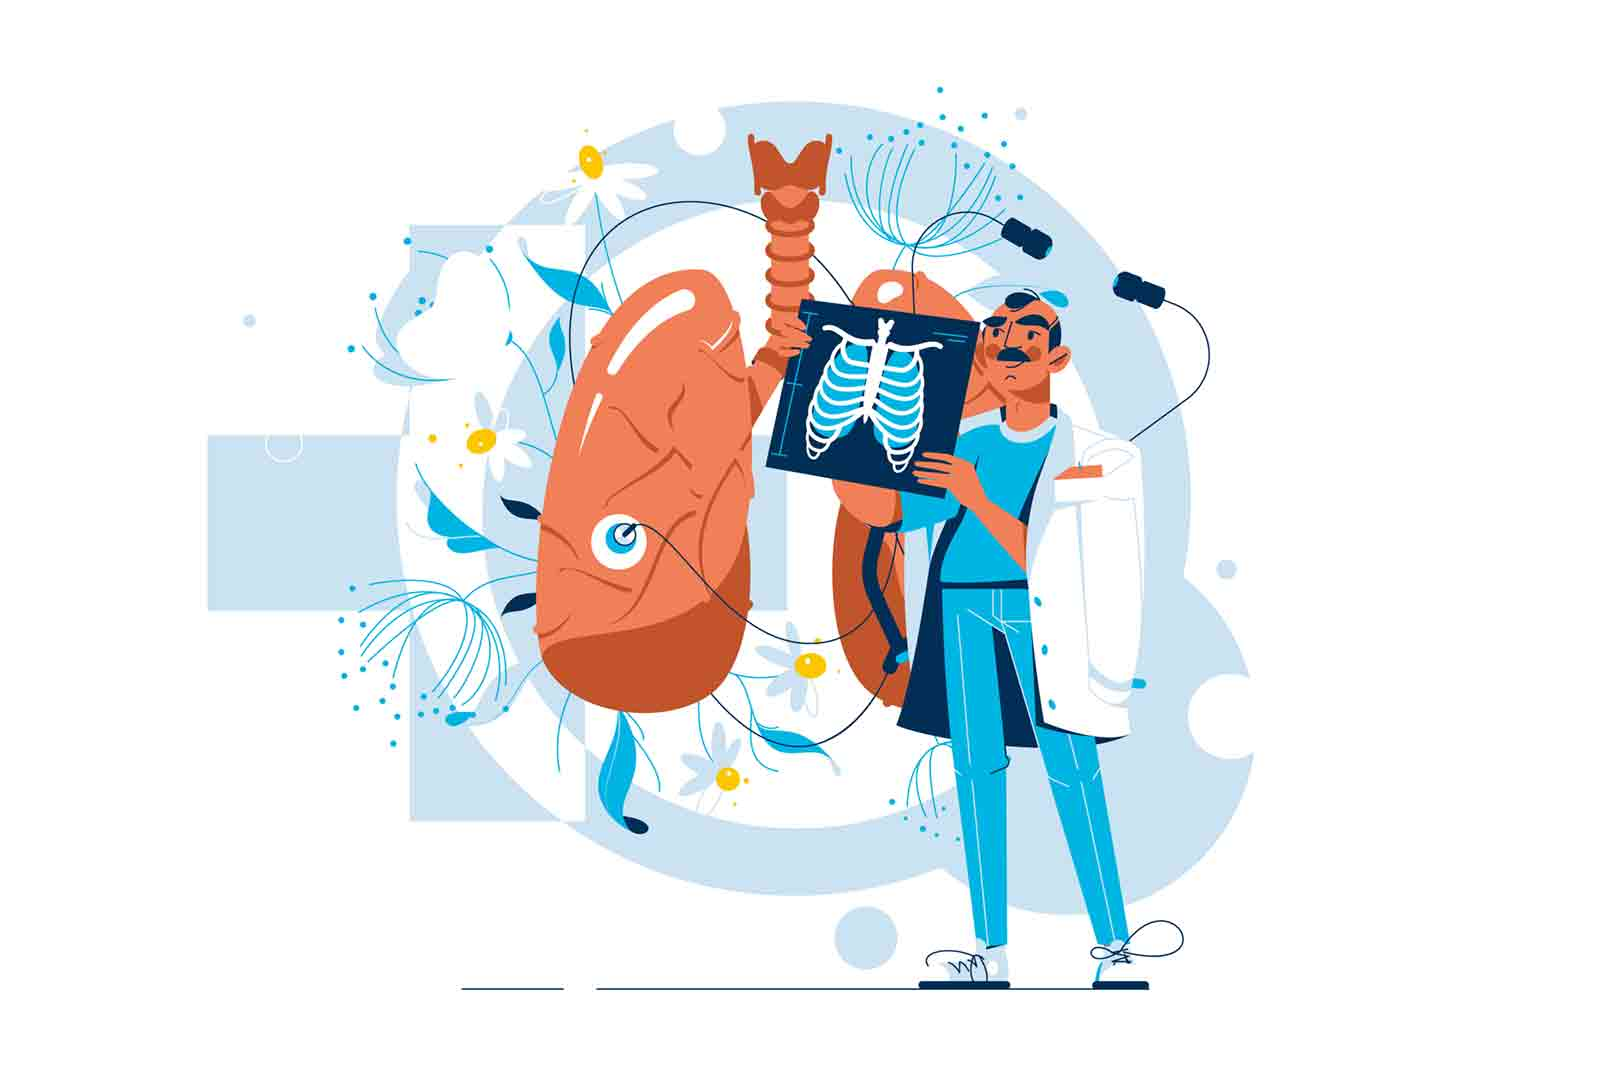 Doctor examine xray of patient vector illustration. Human lung and treatment flat style. Respiratory system examination, pulmonology concept